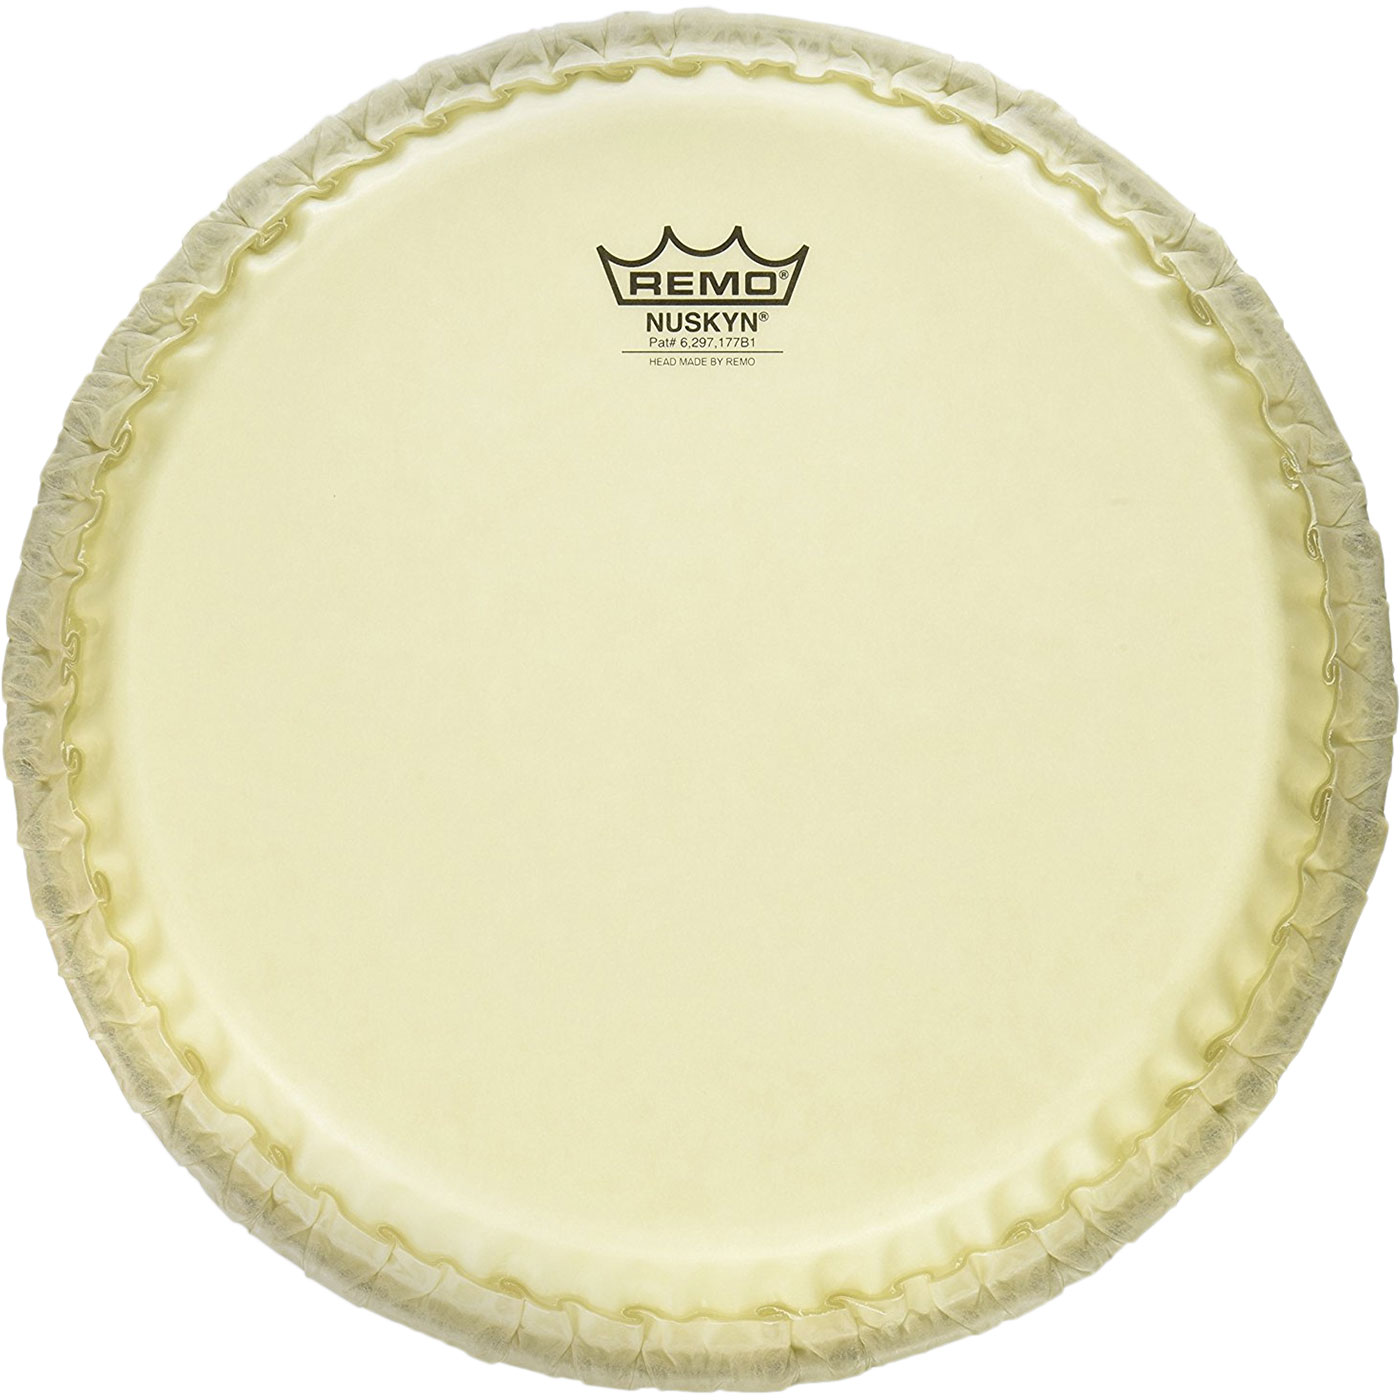 "Remo 11"" S-Series Nuskyn Conga Drum Head"